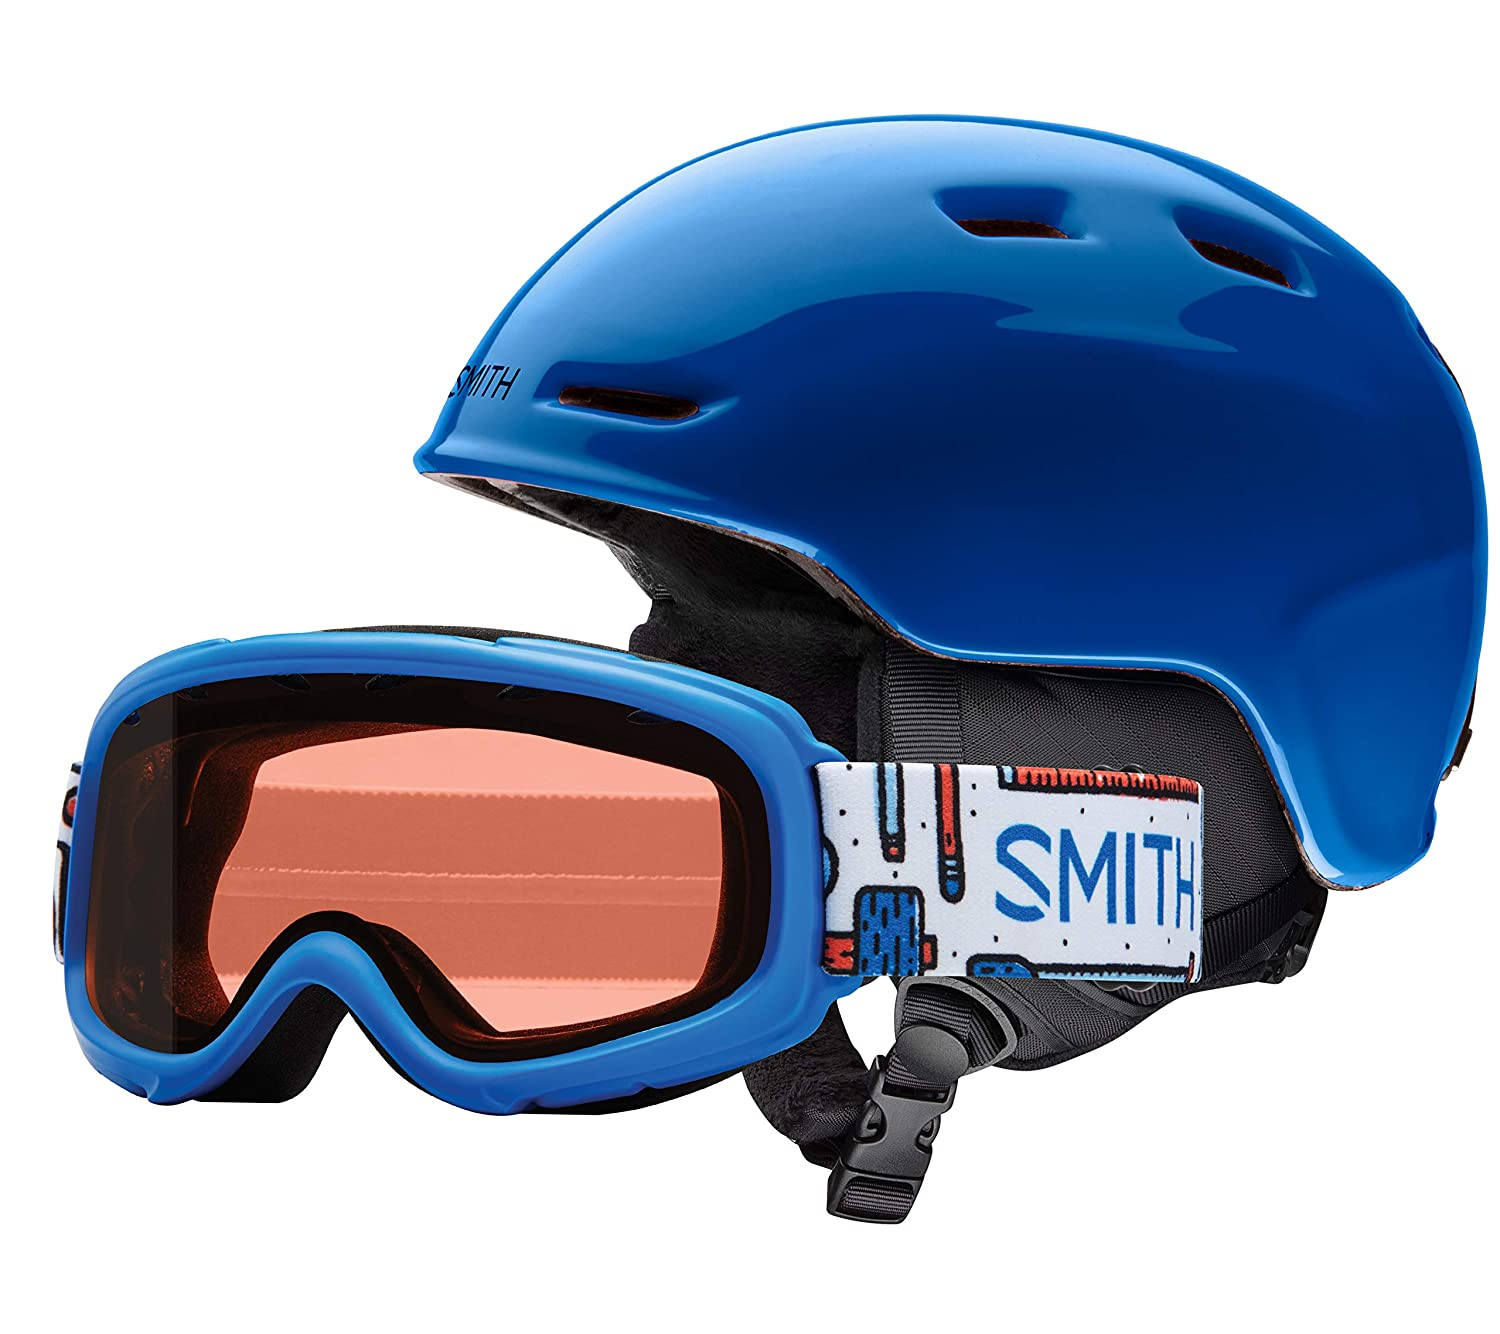 d222c12064d Amazon.com  Smith Optics Unisex Youth Zoom Jr with Gambler Combo Snow  Sports Helmet  Sports   Outdoors